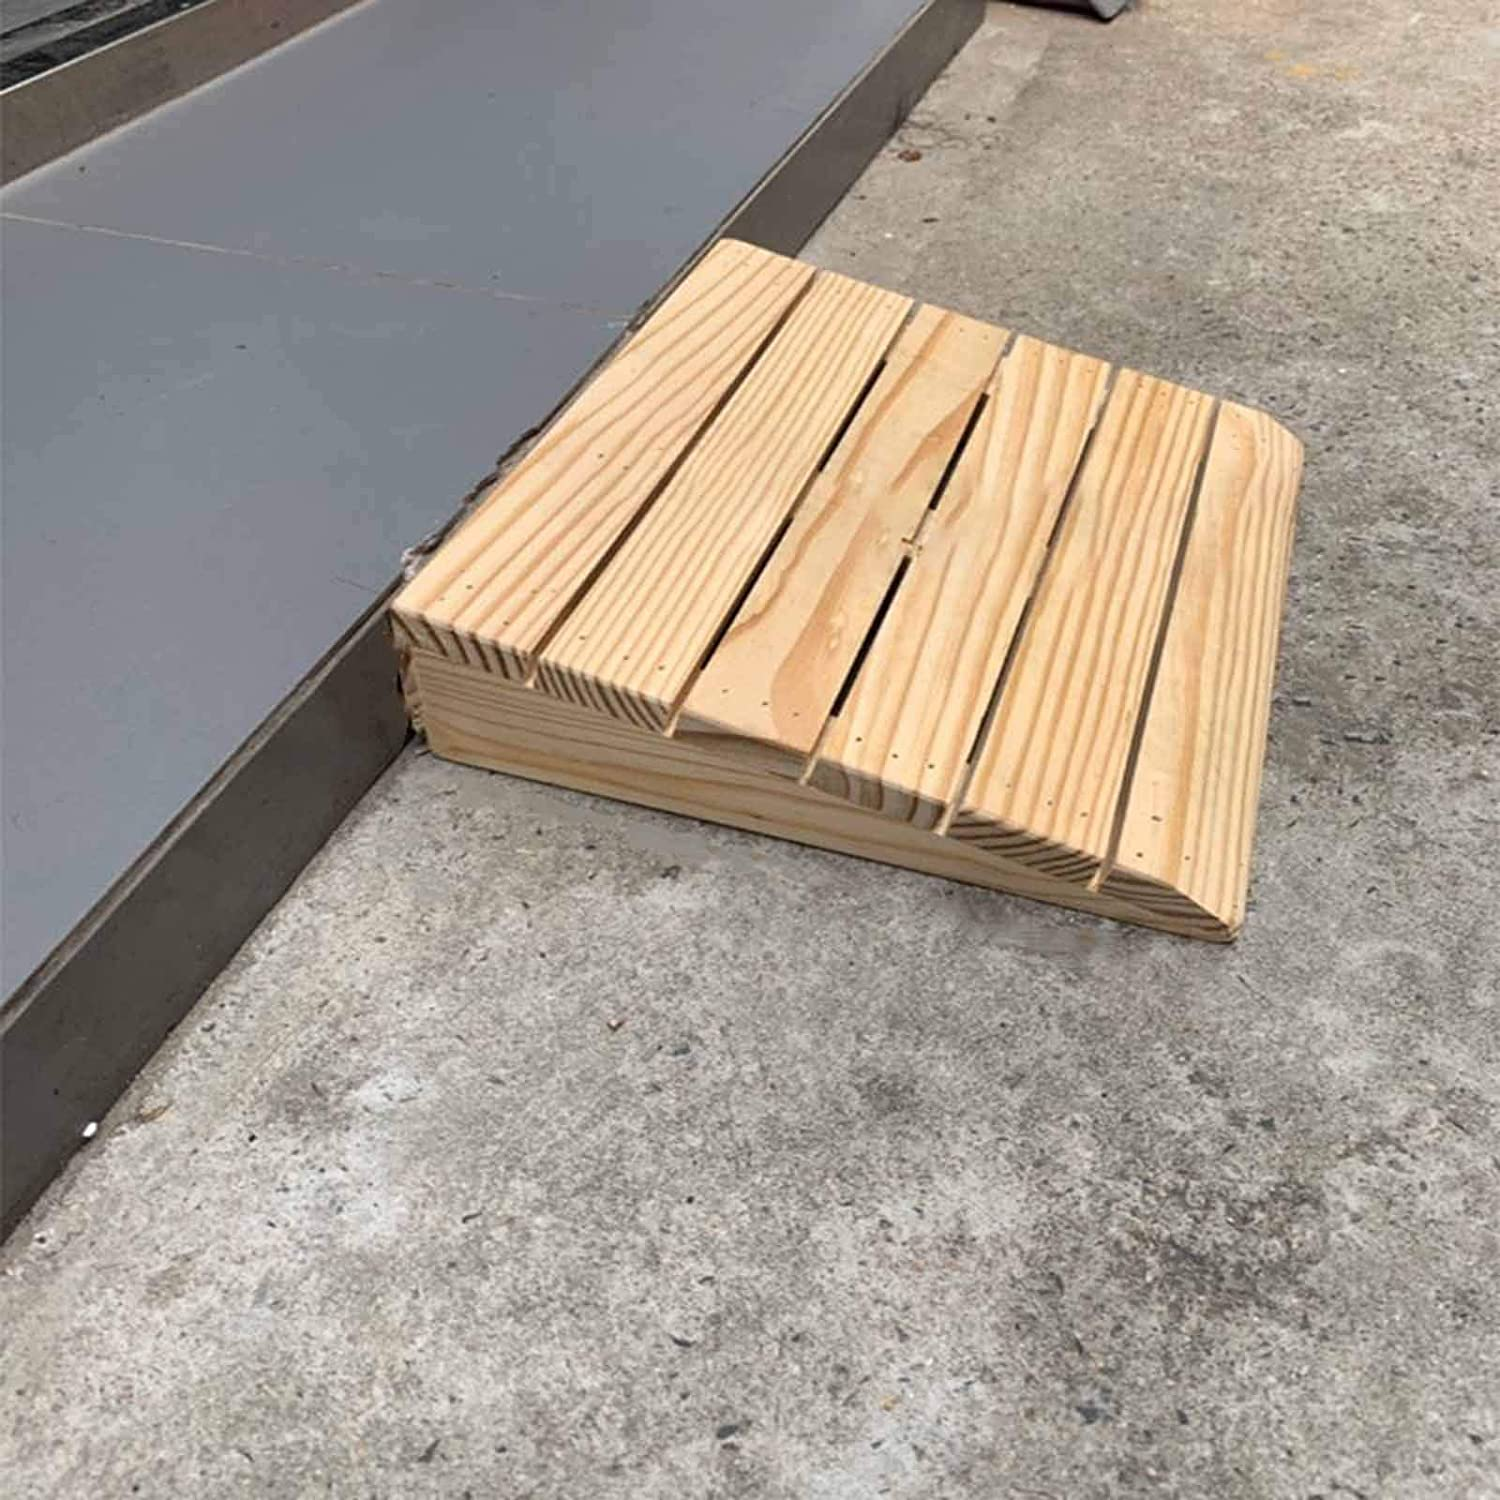 YSML Max 47% OFF Sacramento Mall Solid Wood Portable Ramps Steps Outdoor Indoor Stairs Barr